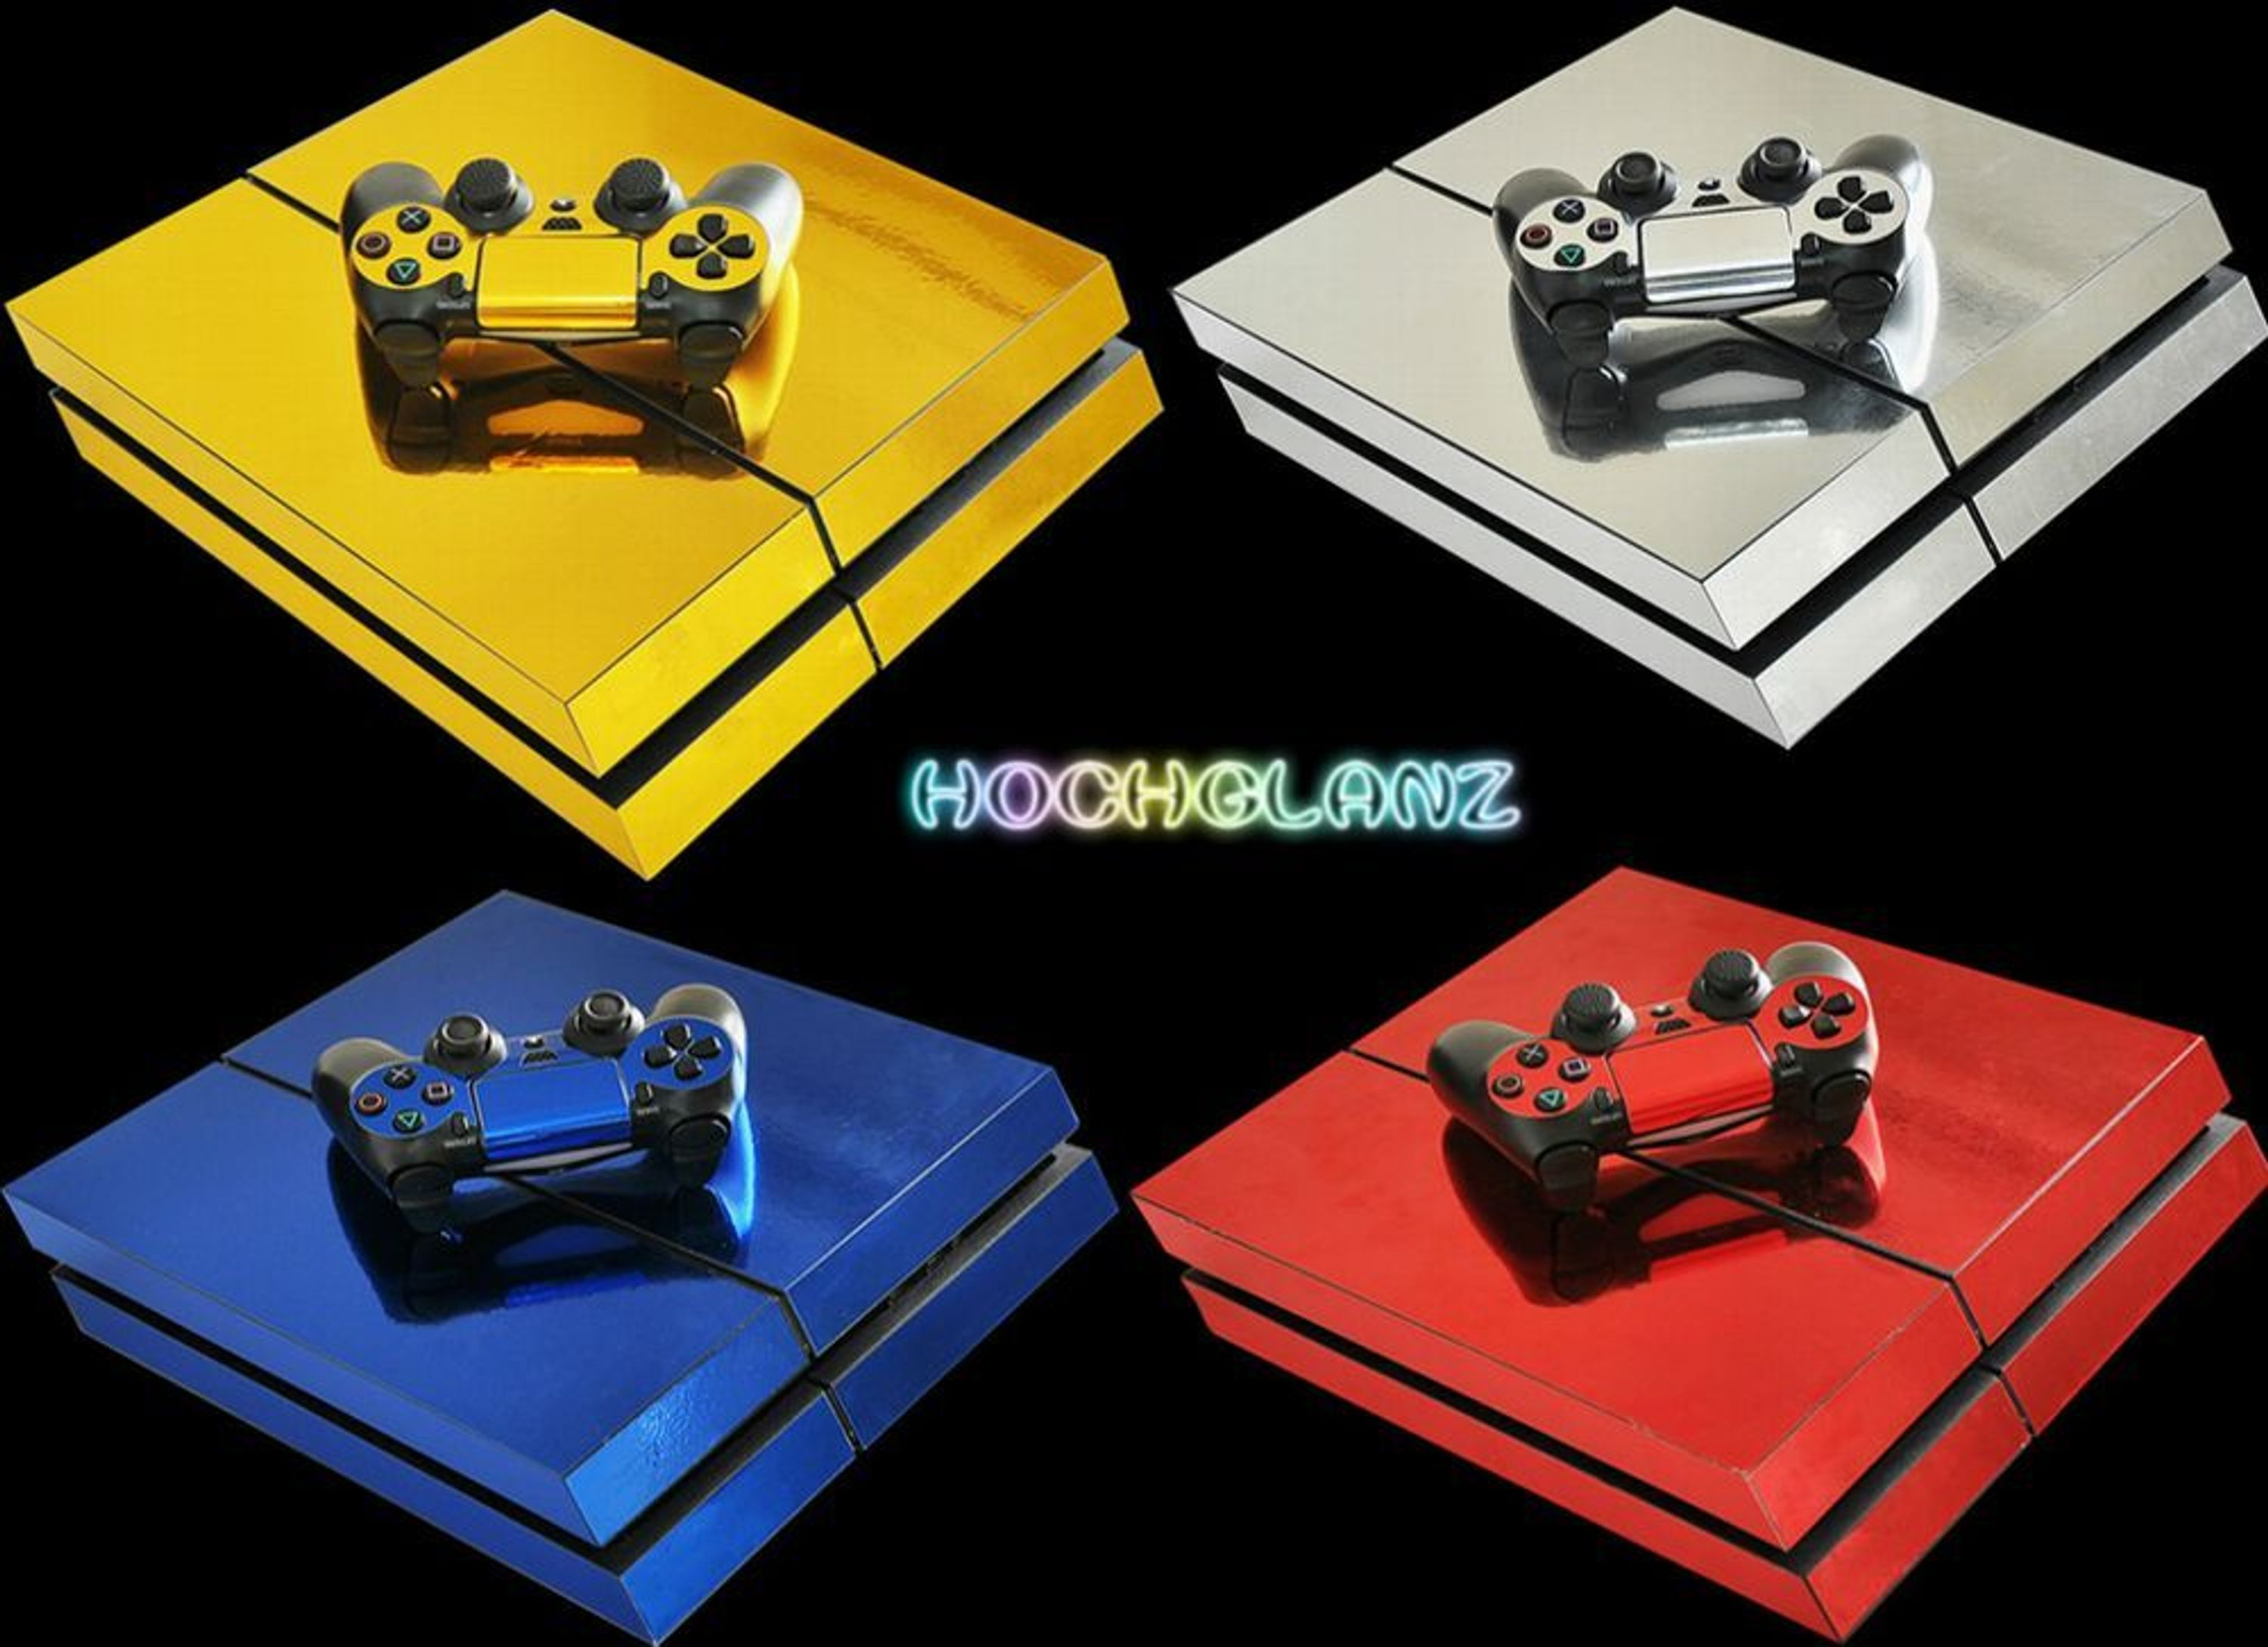 Hochglanz chrom skin f sony ps4 playstation 4 design for Hochglanz folie